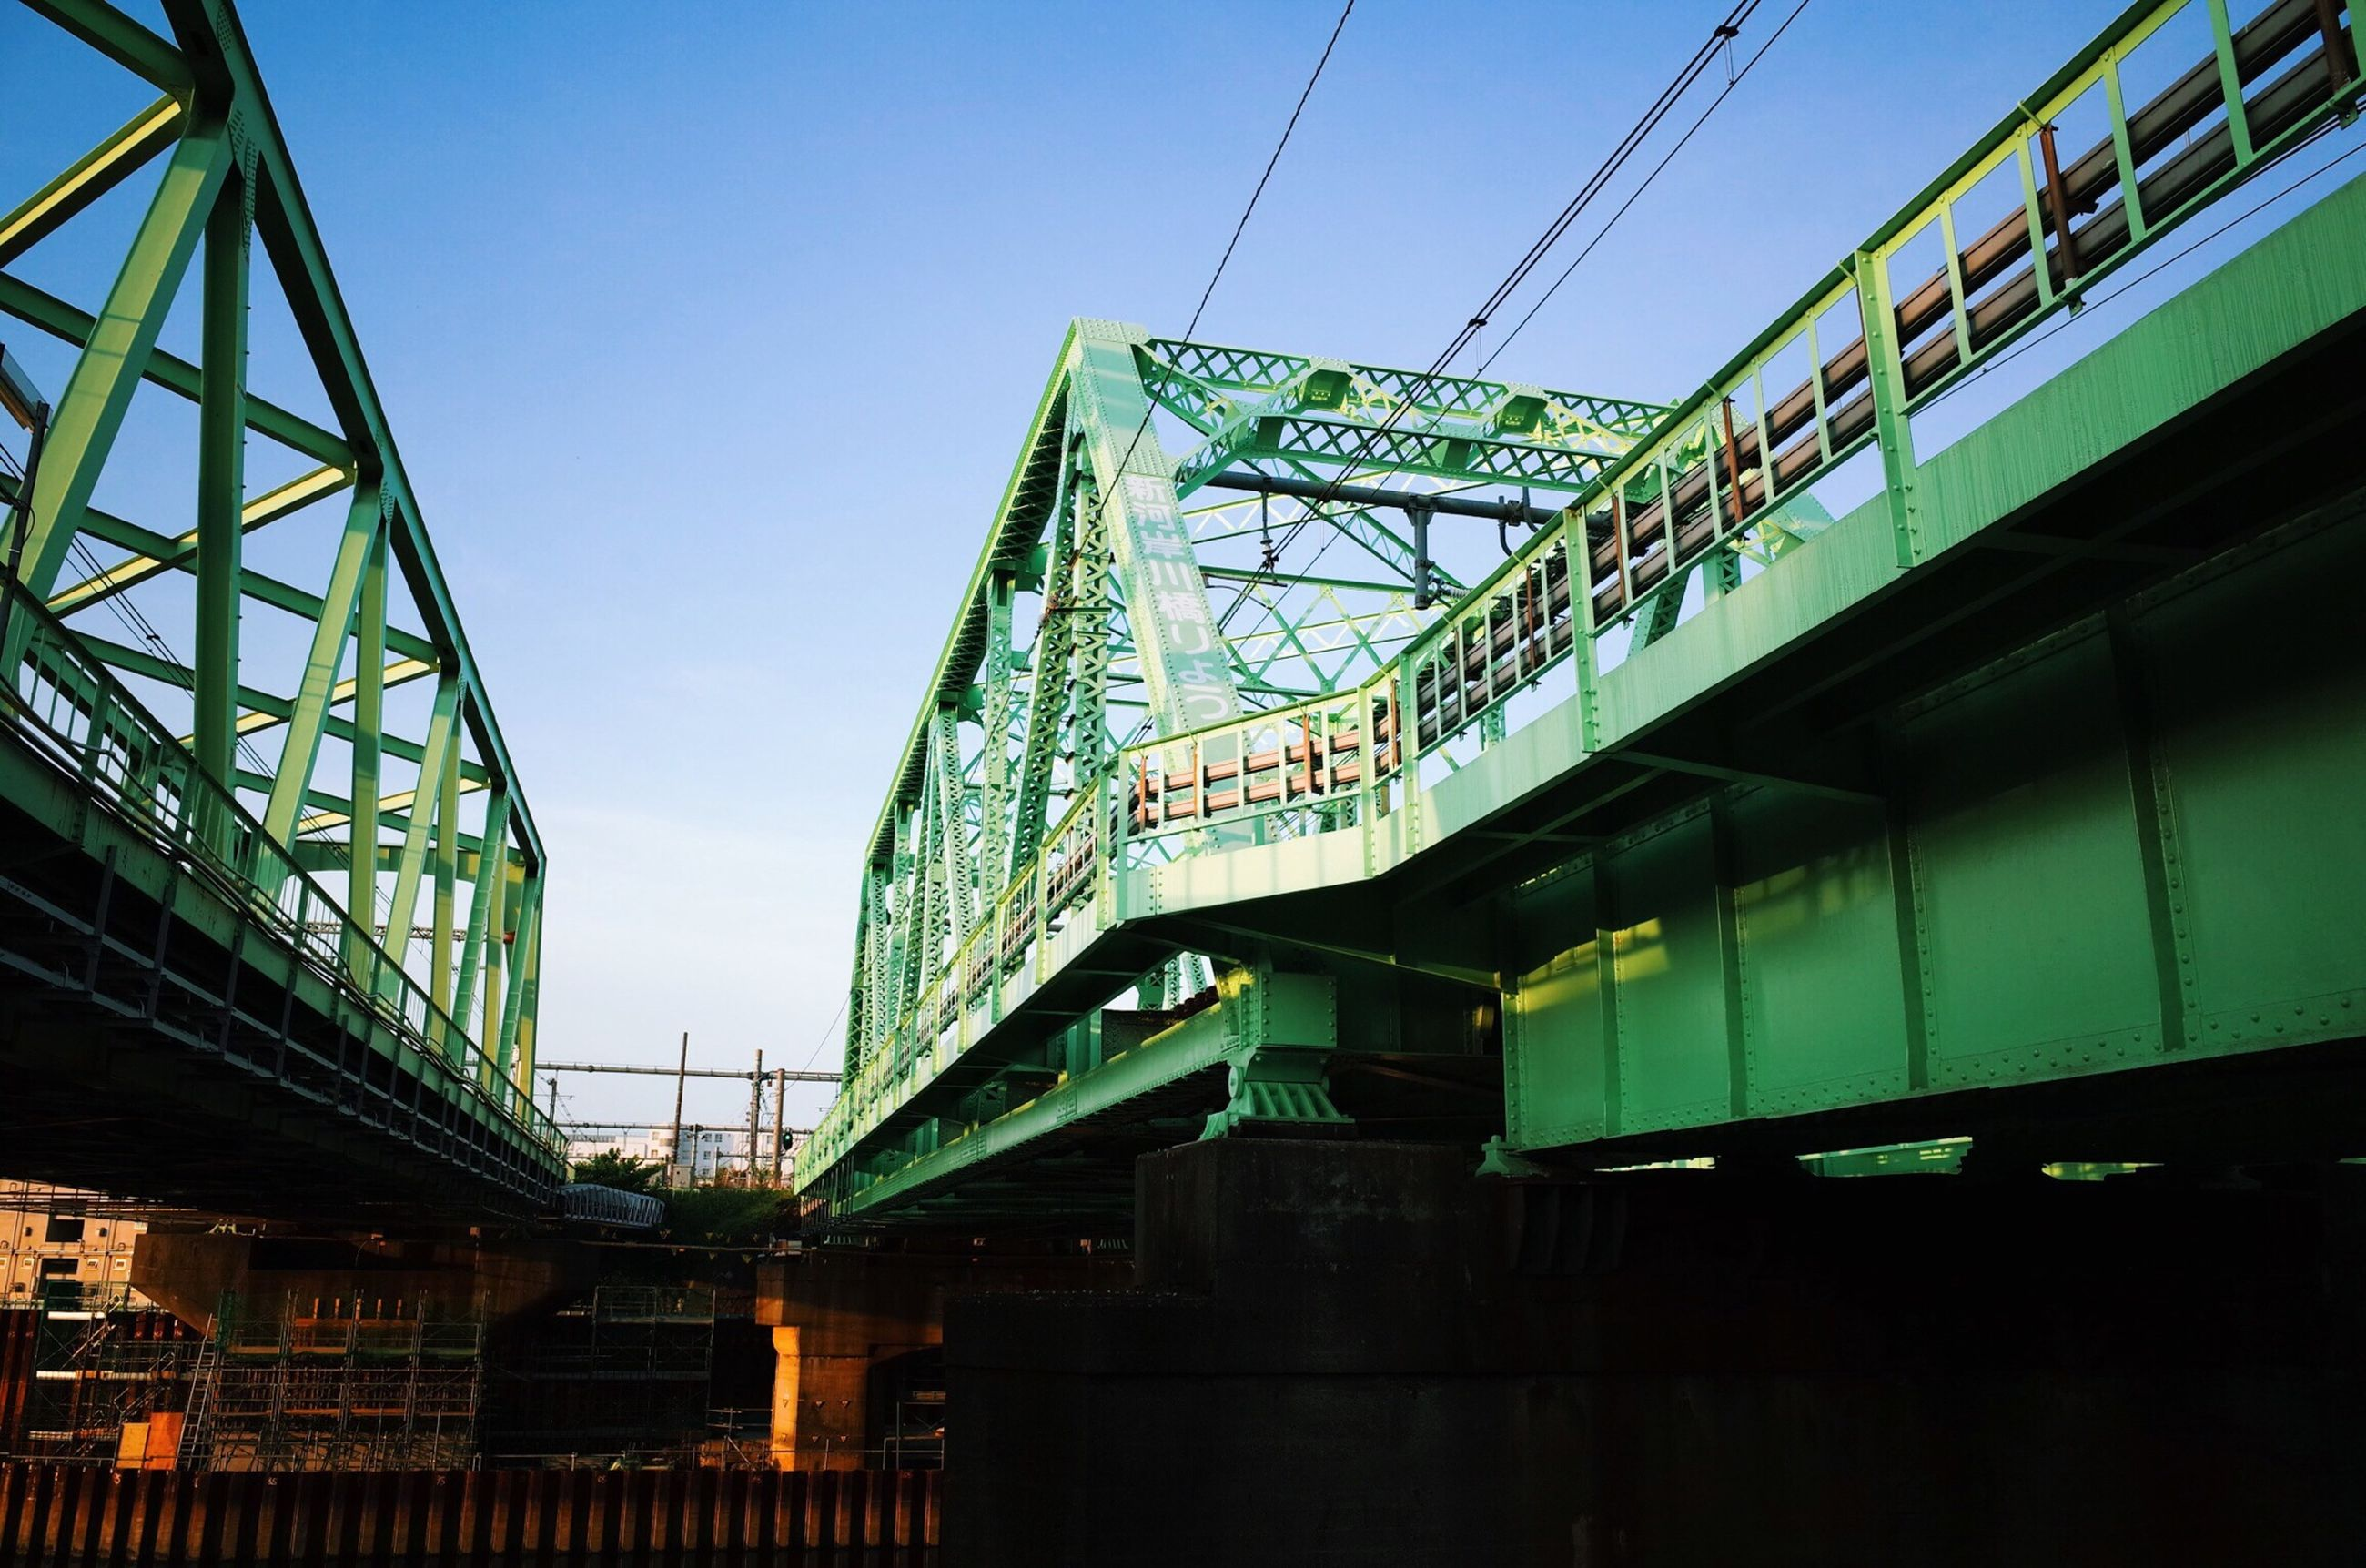 architecture, built structure, low angle view, connection, bridge - man made structure, building exterior, transportation, clear sky, rail transportation, engineering, railroad track, sky, city, cable, public transportation, power line, railroad station, metal, outdoors, train - vehicle